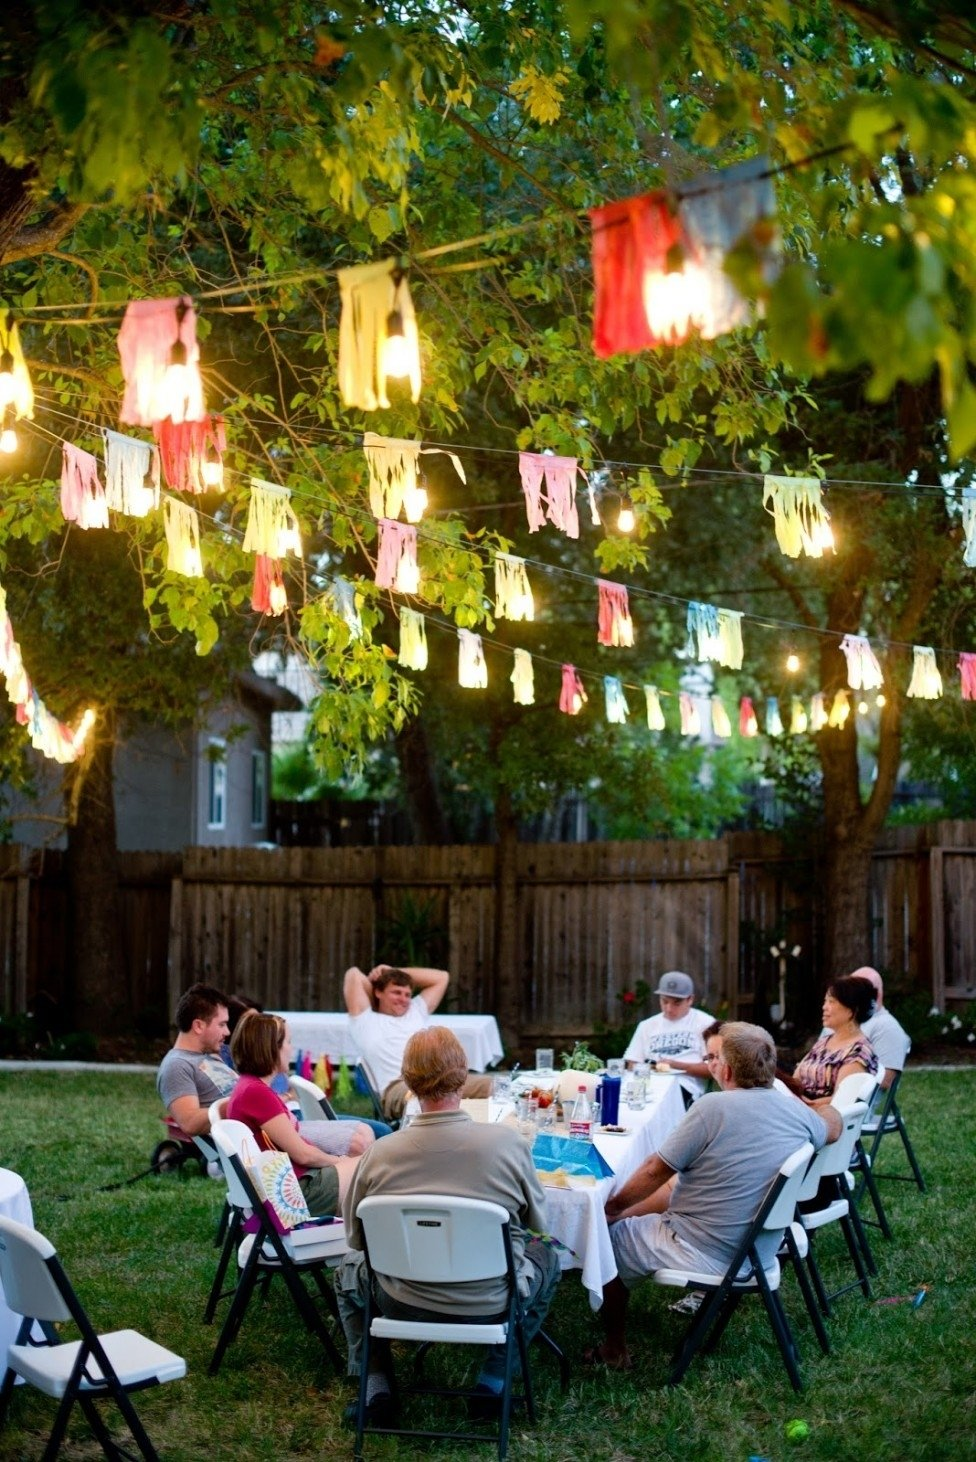 beautiful backyard party ideas for adults | design & ideas : great